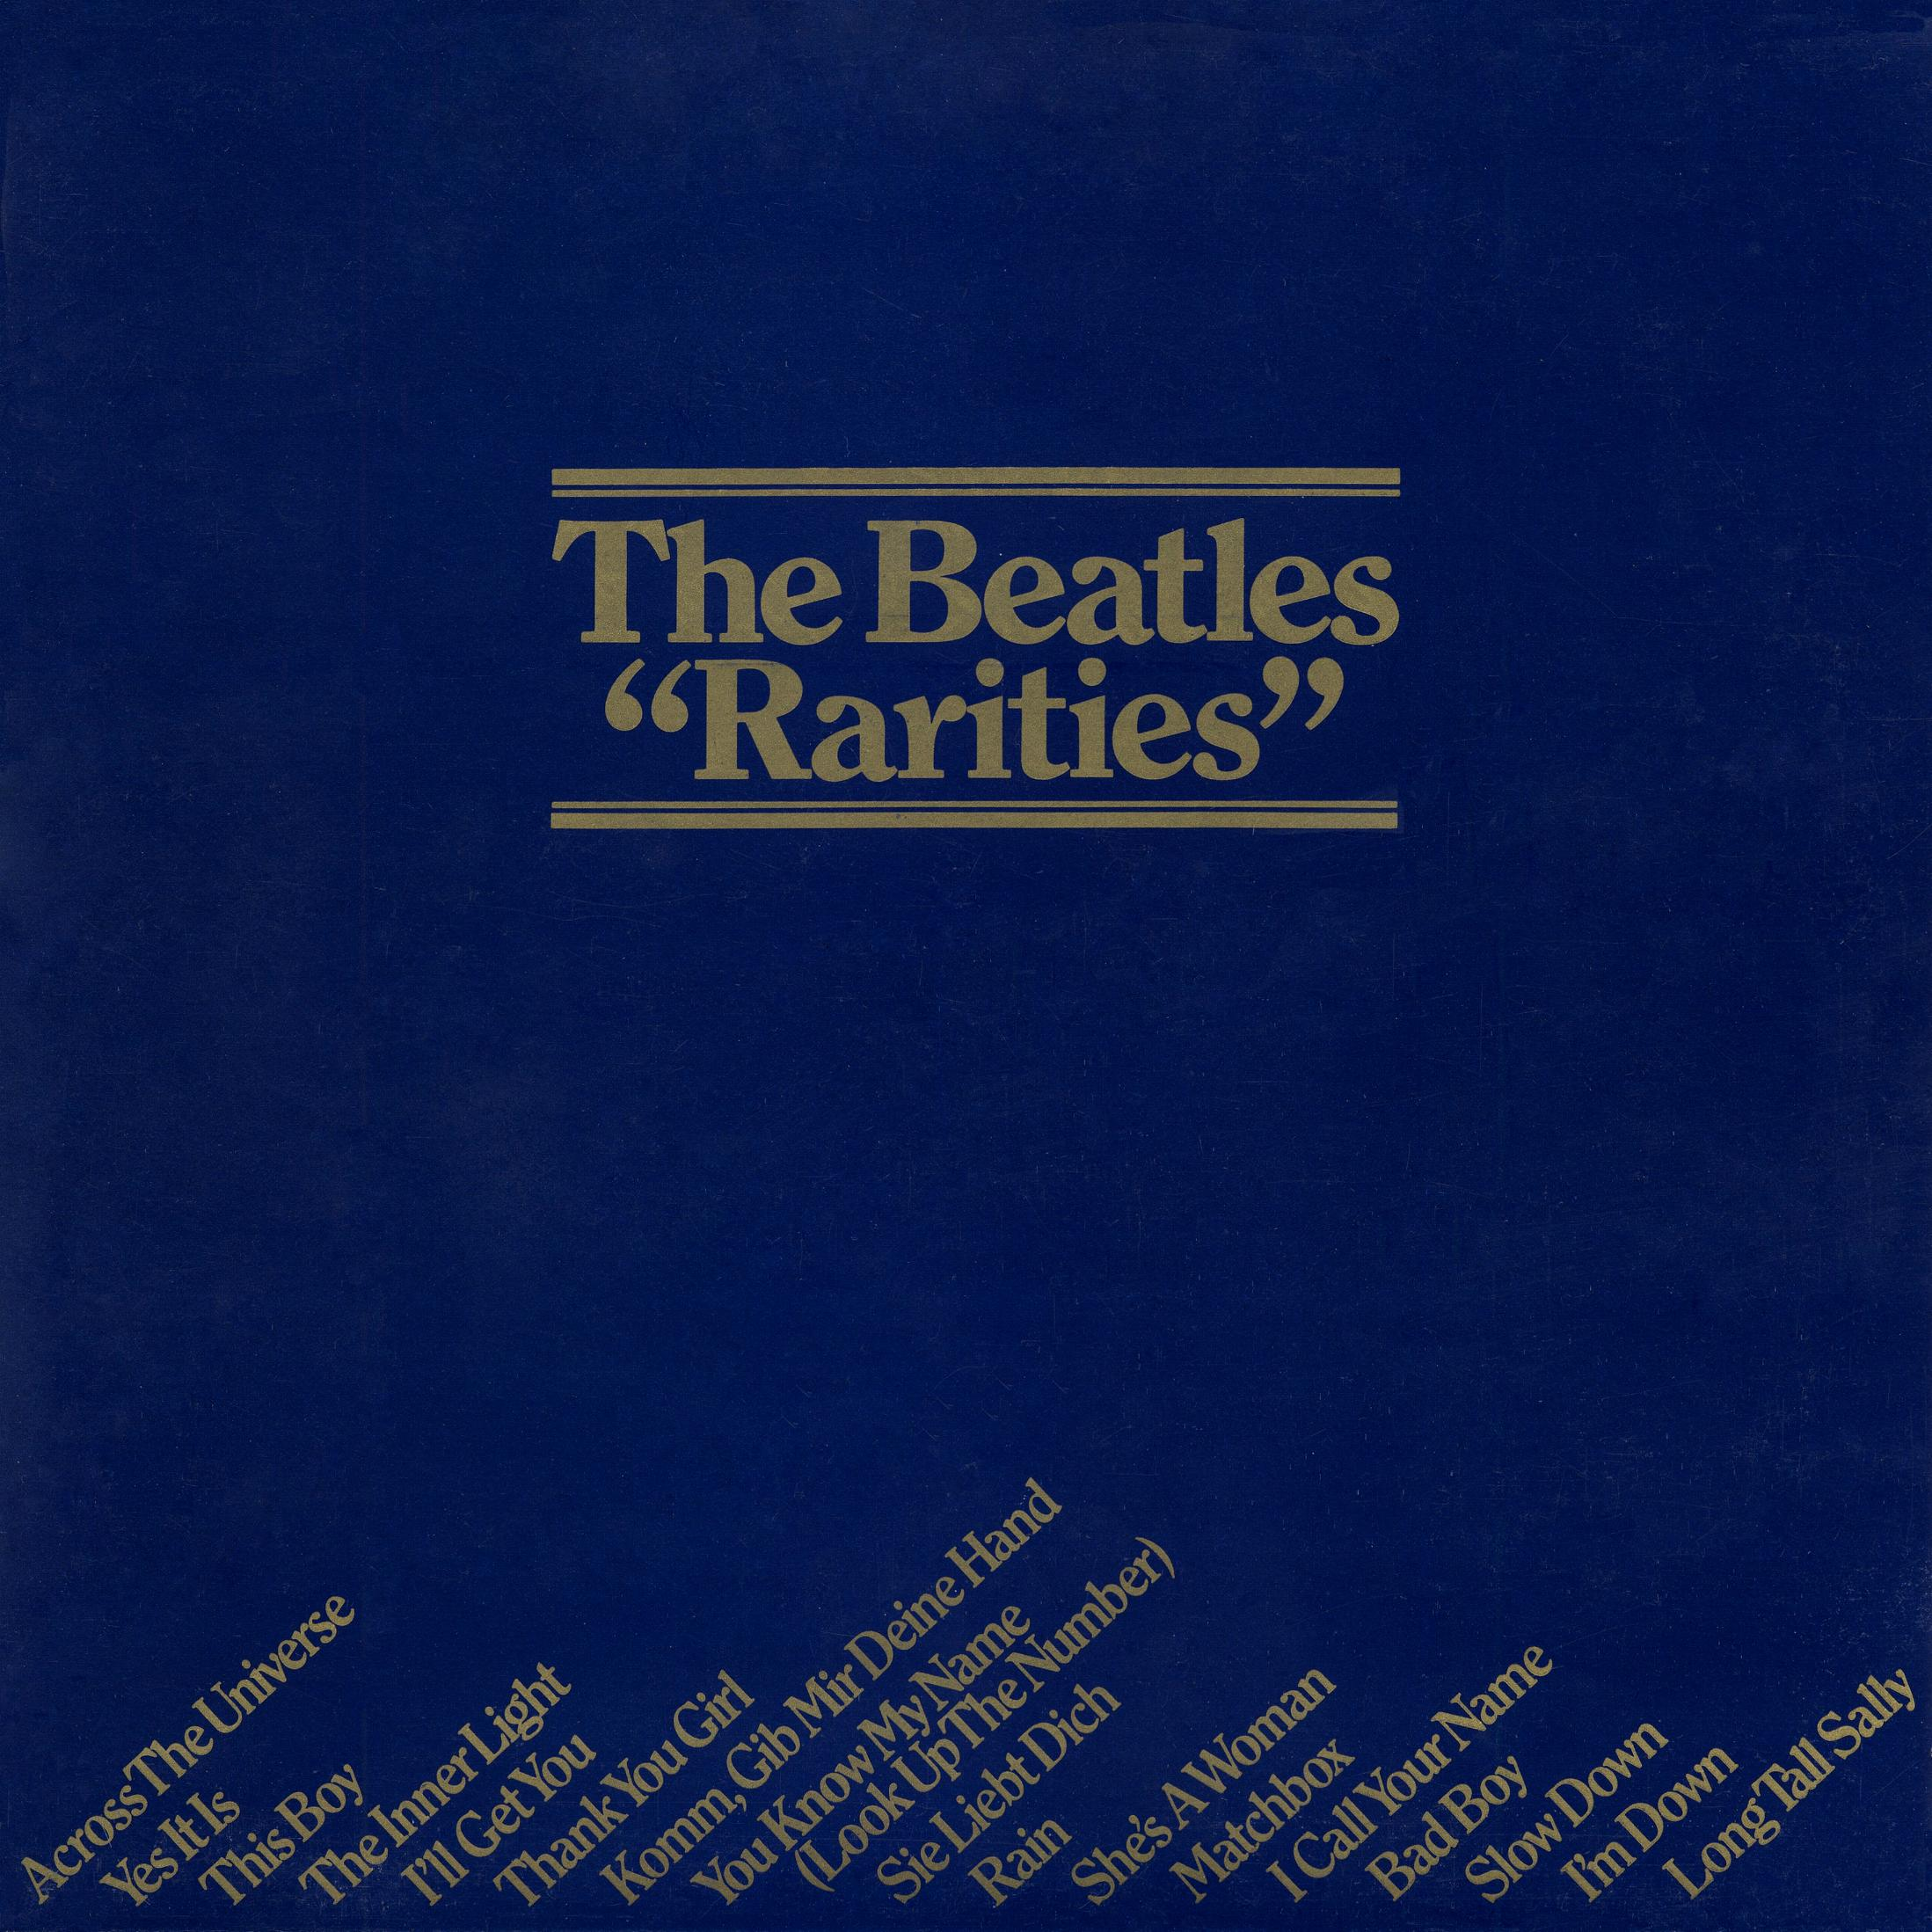 The Beatles Collection 187 The Beatles Rarities